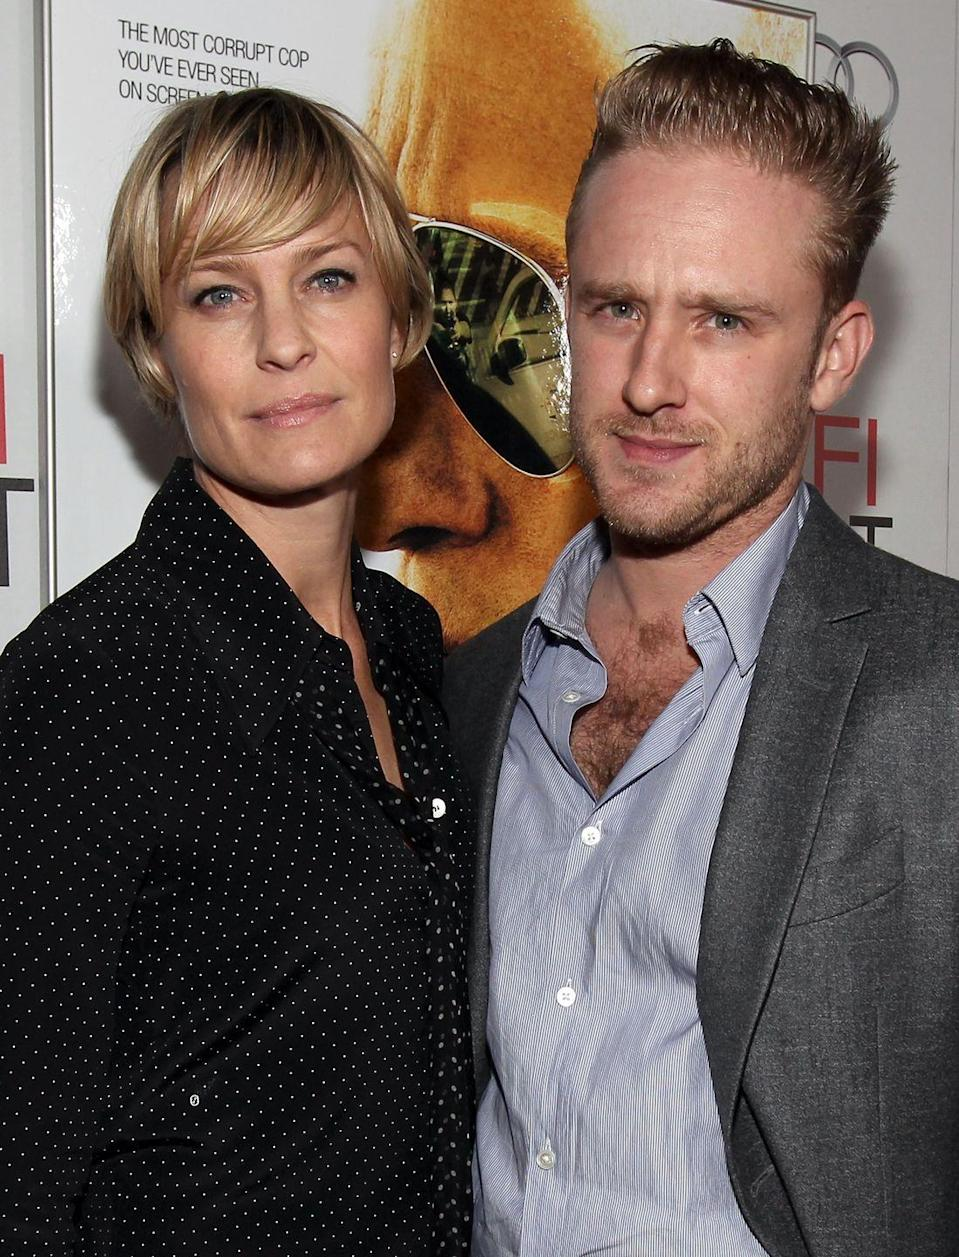 """<p>The former couple were on-and-off again since getting engaged in January 2014 and <a href=""""http://people.com/tv/ben-foster-and-robin-wright-end-engagement-again/"""" rel=""""nofollow noopener"""" target=""""_blank"""" data-ylk=""""slk:split for the second time"""" class=""""link rapid-noclick-resp"""">split for the second time</a> in August 2015. </p>"""